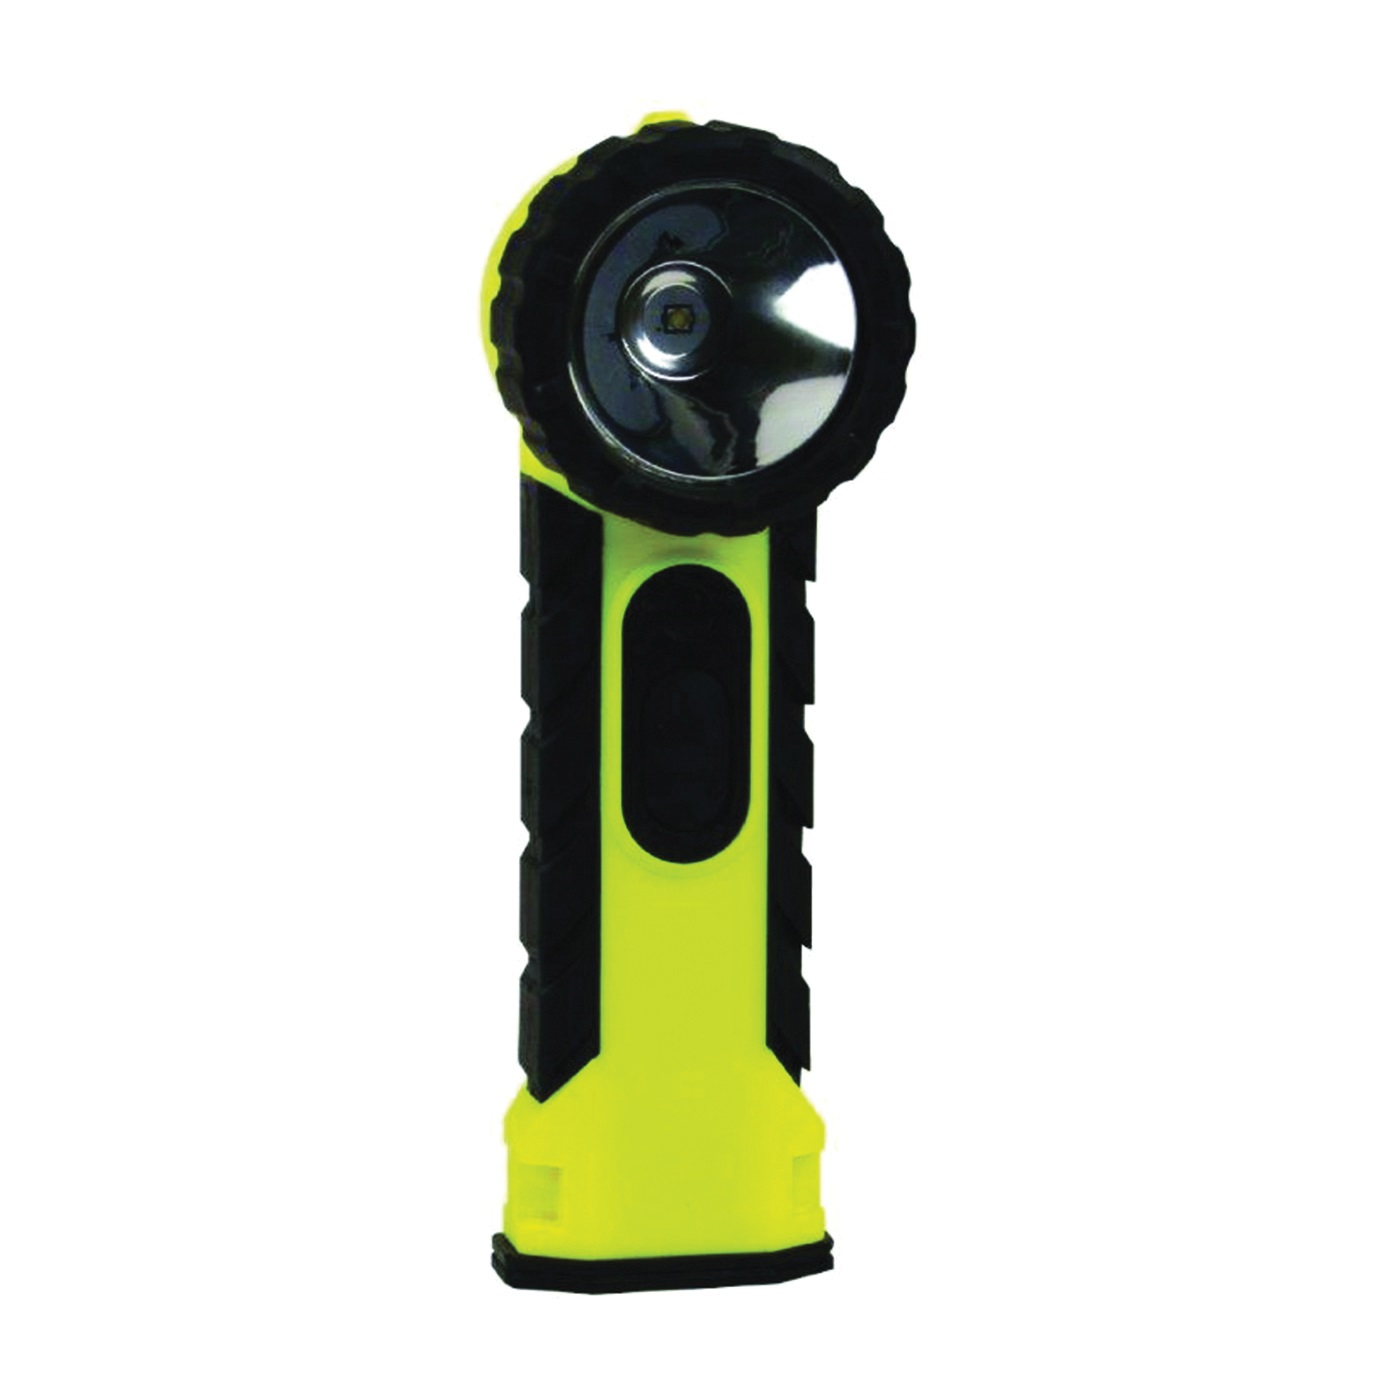 Picture of Dorcy 41-0095 Flashlight, AA Battery, Alkaline Battery, LED Lamp, 190 Lumens, 230 m Beam Distance, Yellow